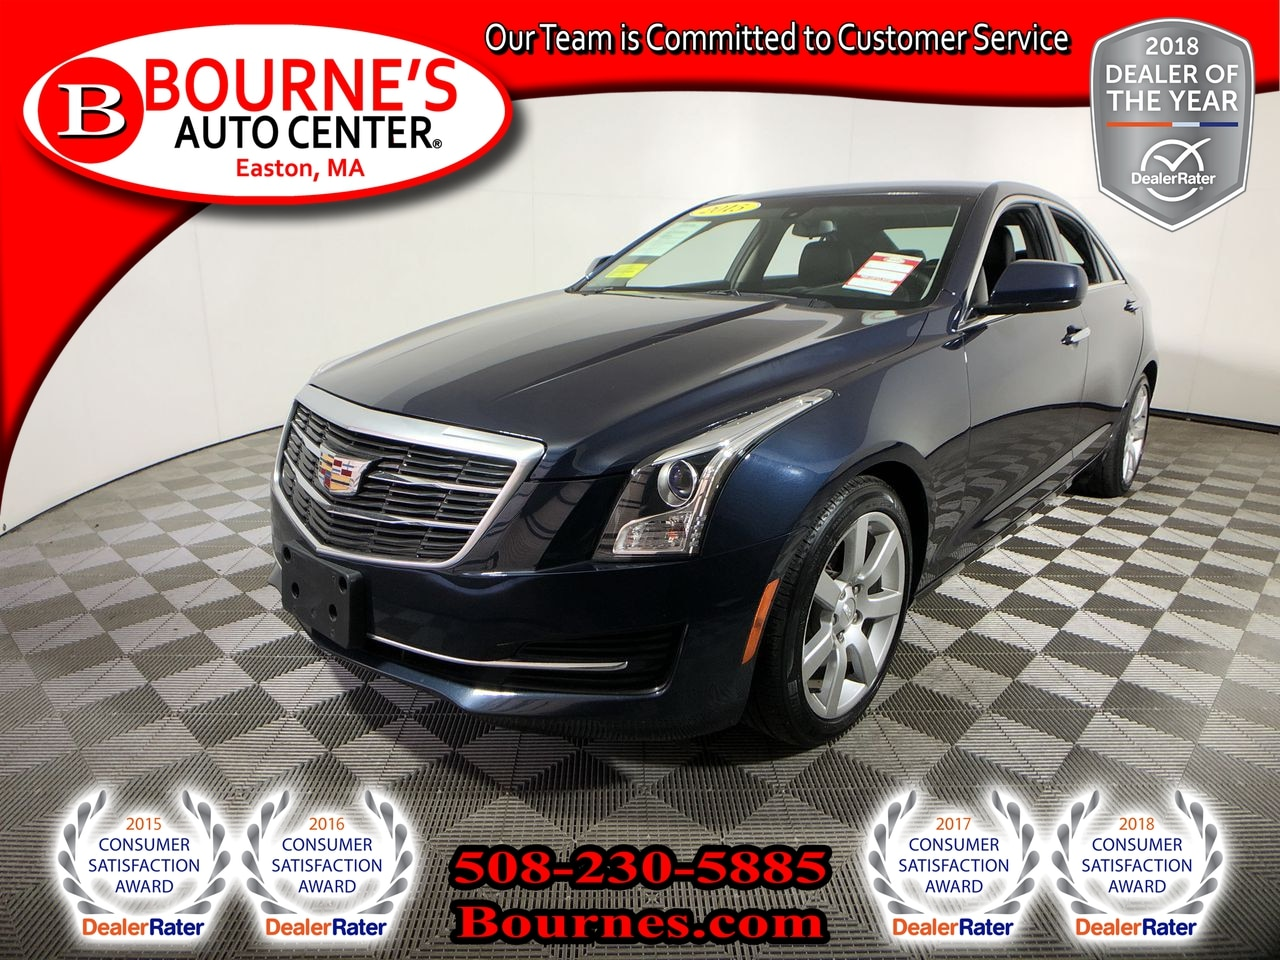 Used 2015 Cadillac Ats For Sale At Bournes Auto Center Vin Largest Engine 1g6aa5ra5f0132614